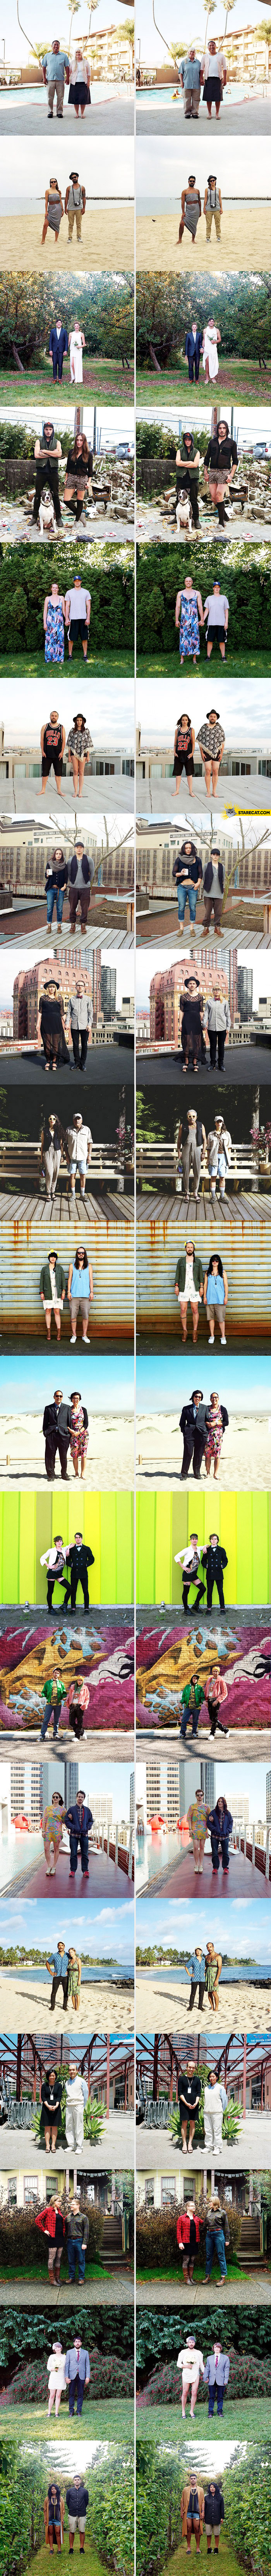 Couples switch clothes